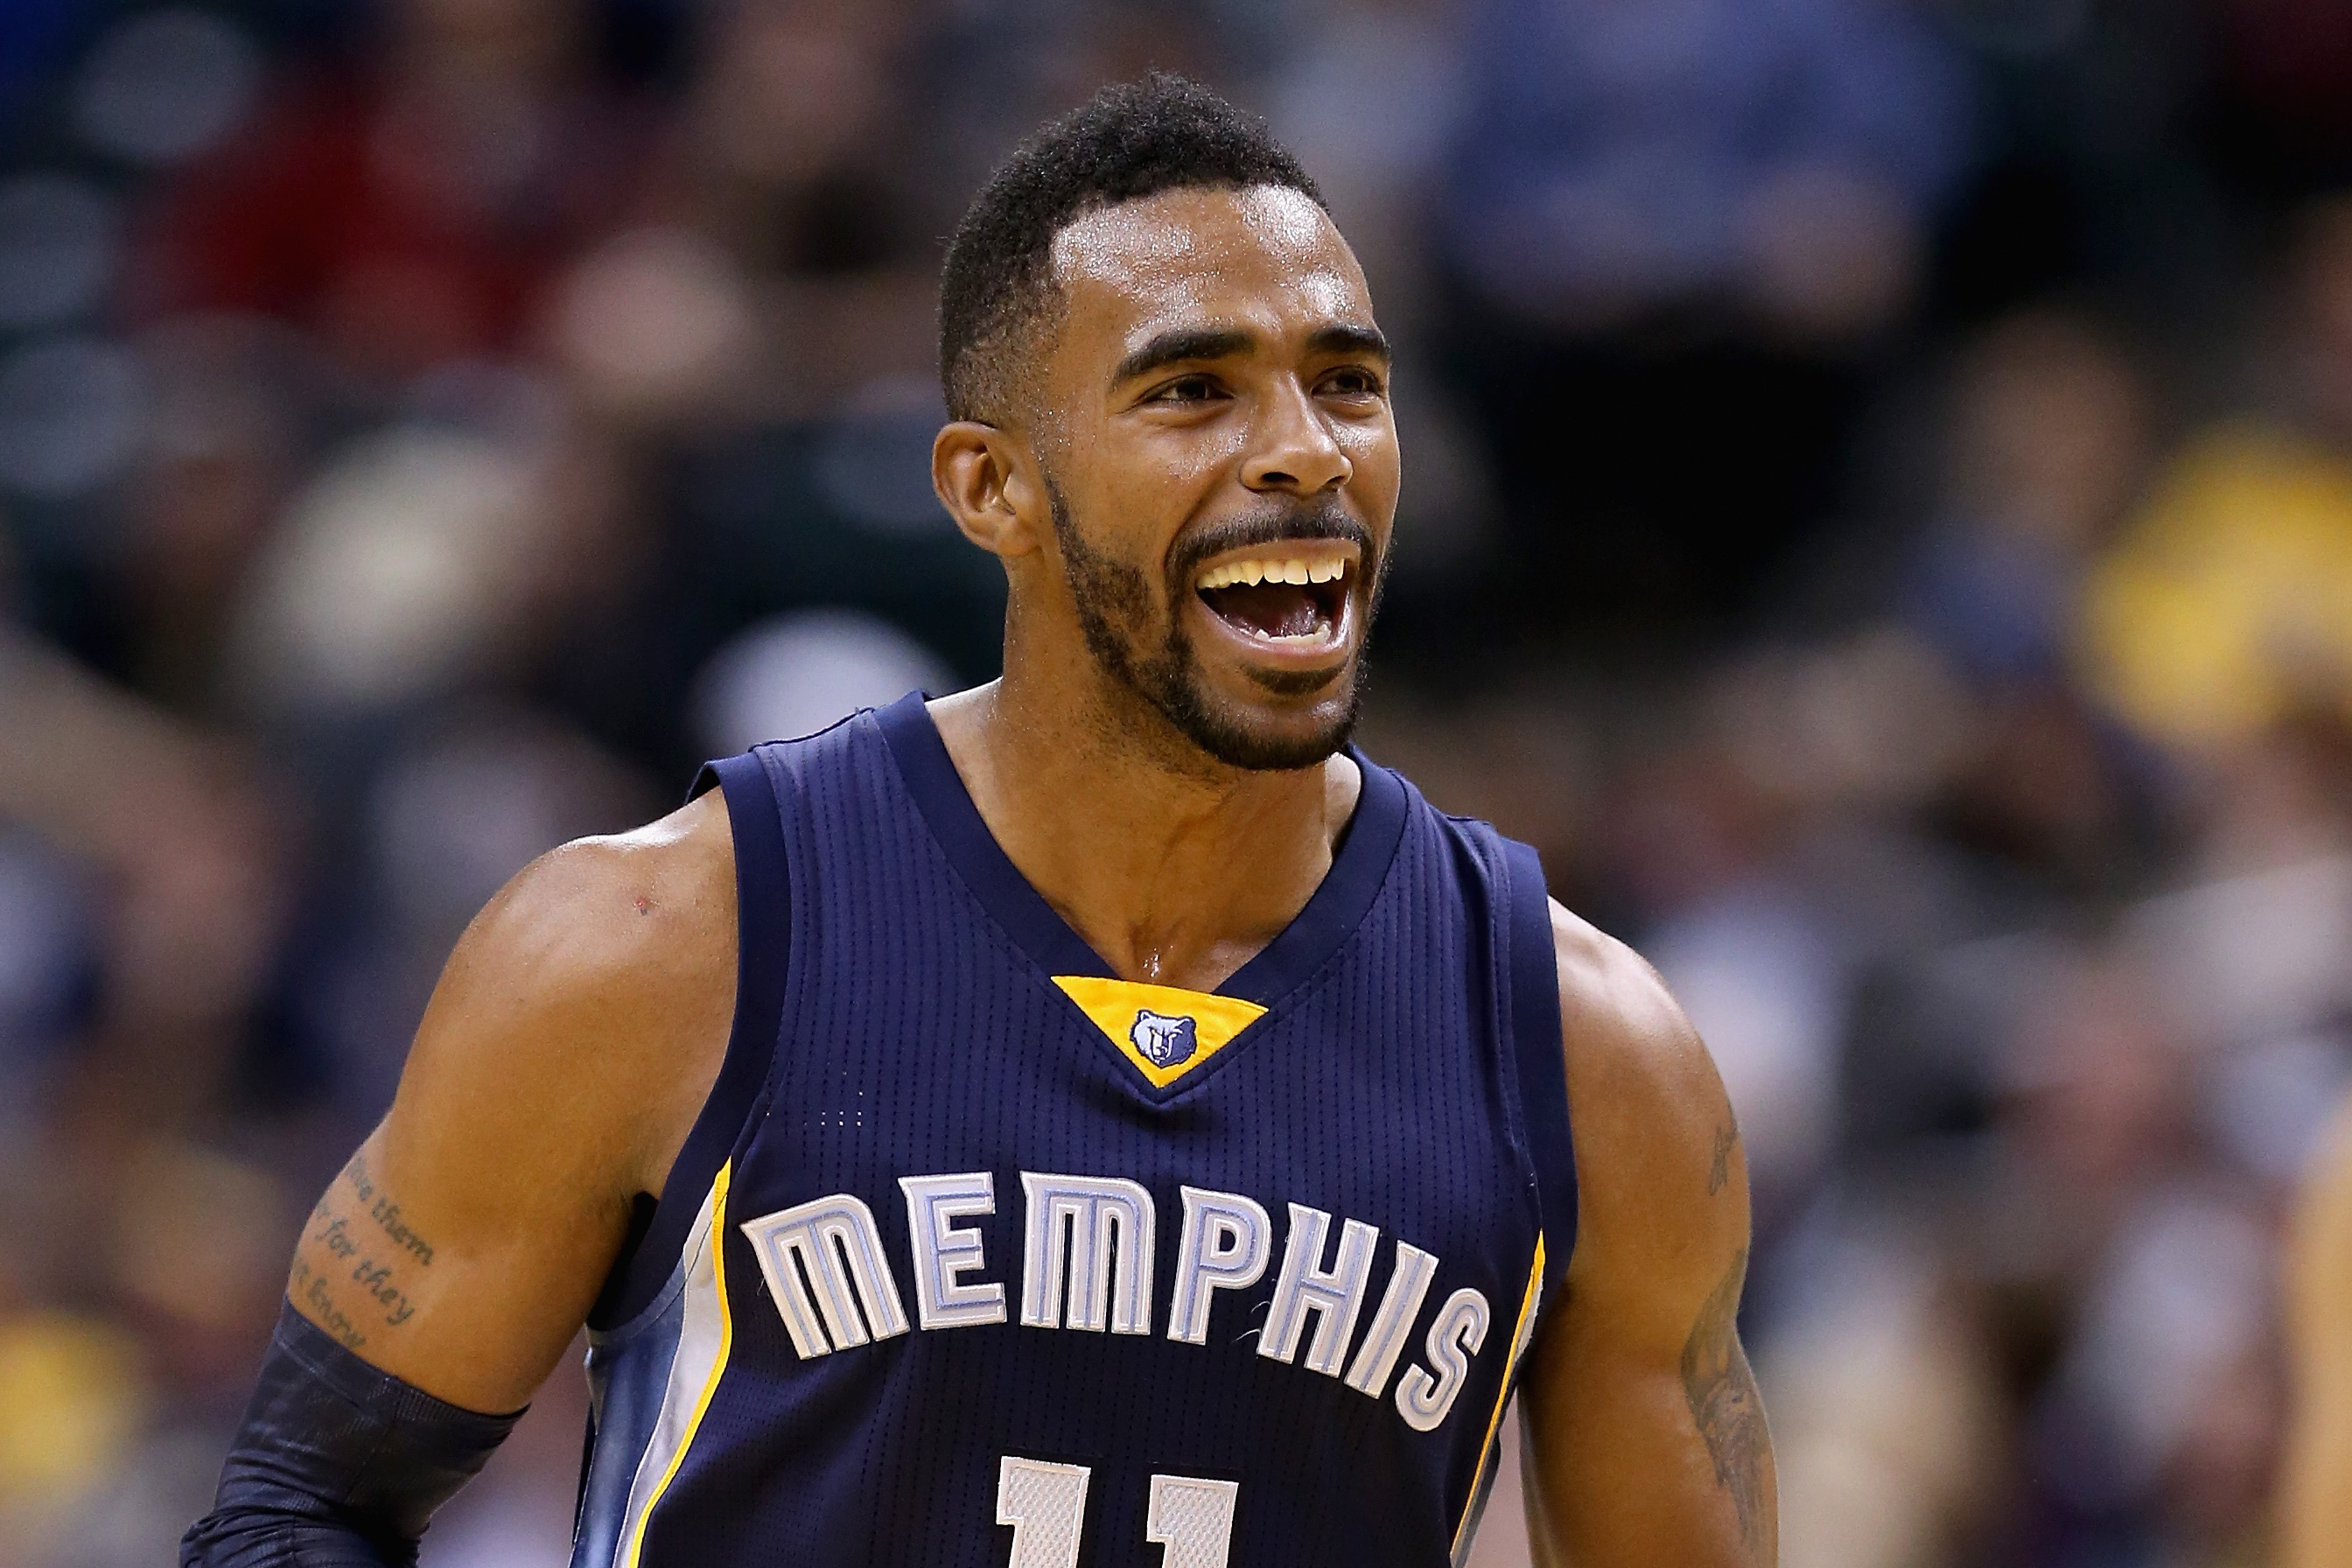 Mike Conley earned a  million dollar salary, leaving the net worth at 2 million in 2017